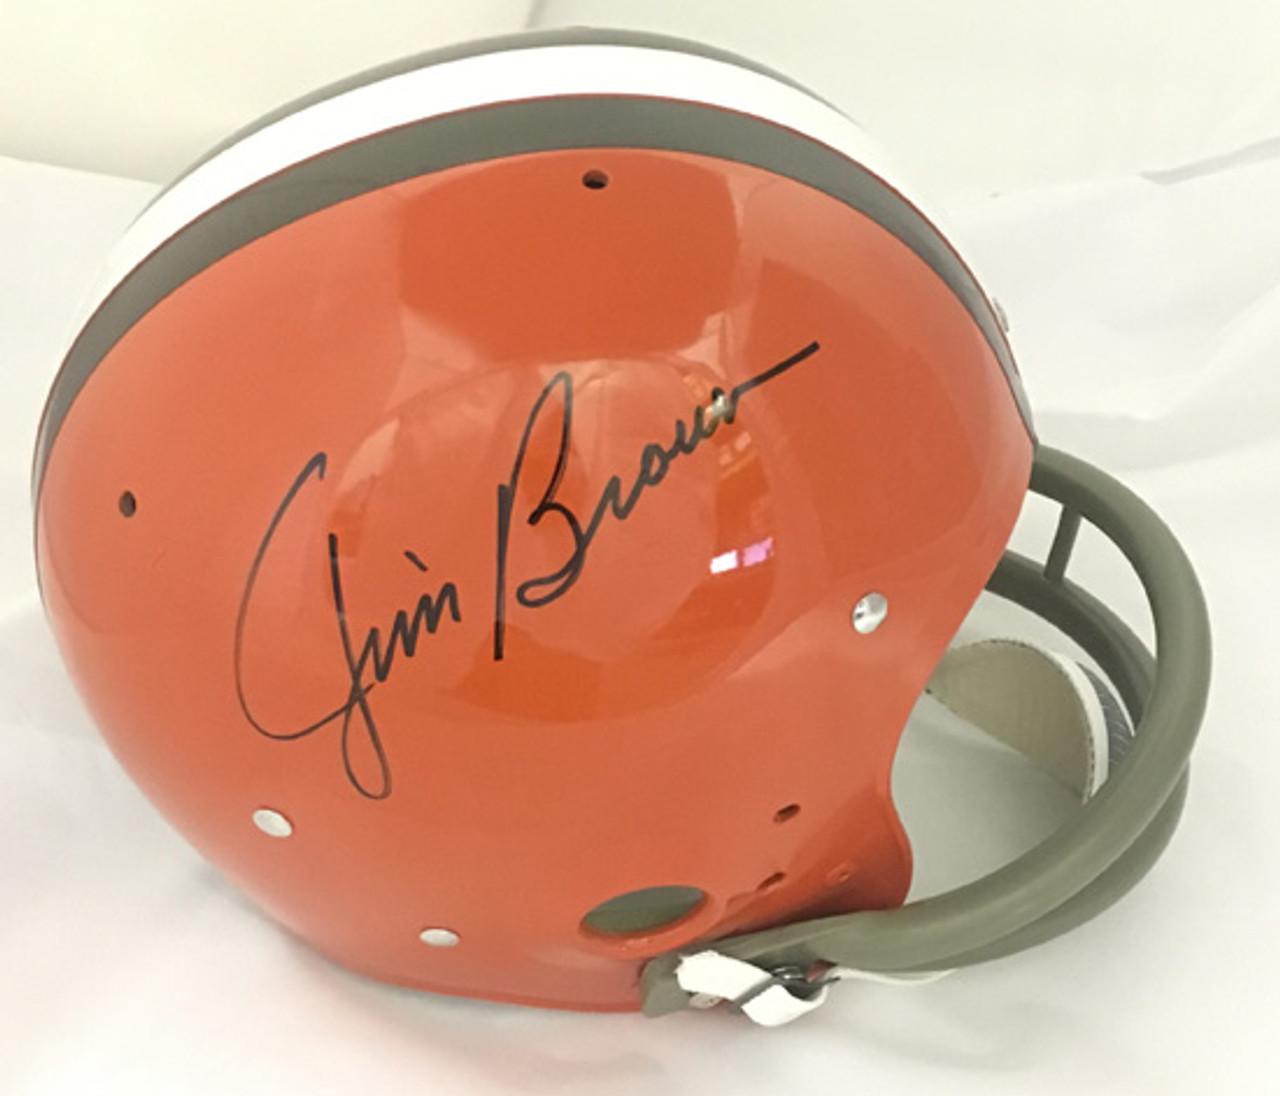 6cdb5b30 Jim Brown Autographed full-size Cleveland Browns TK Helmet - COA included